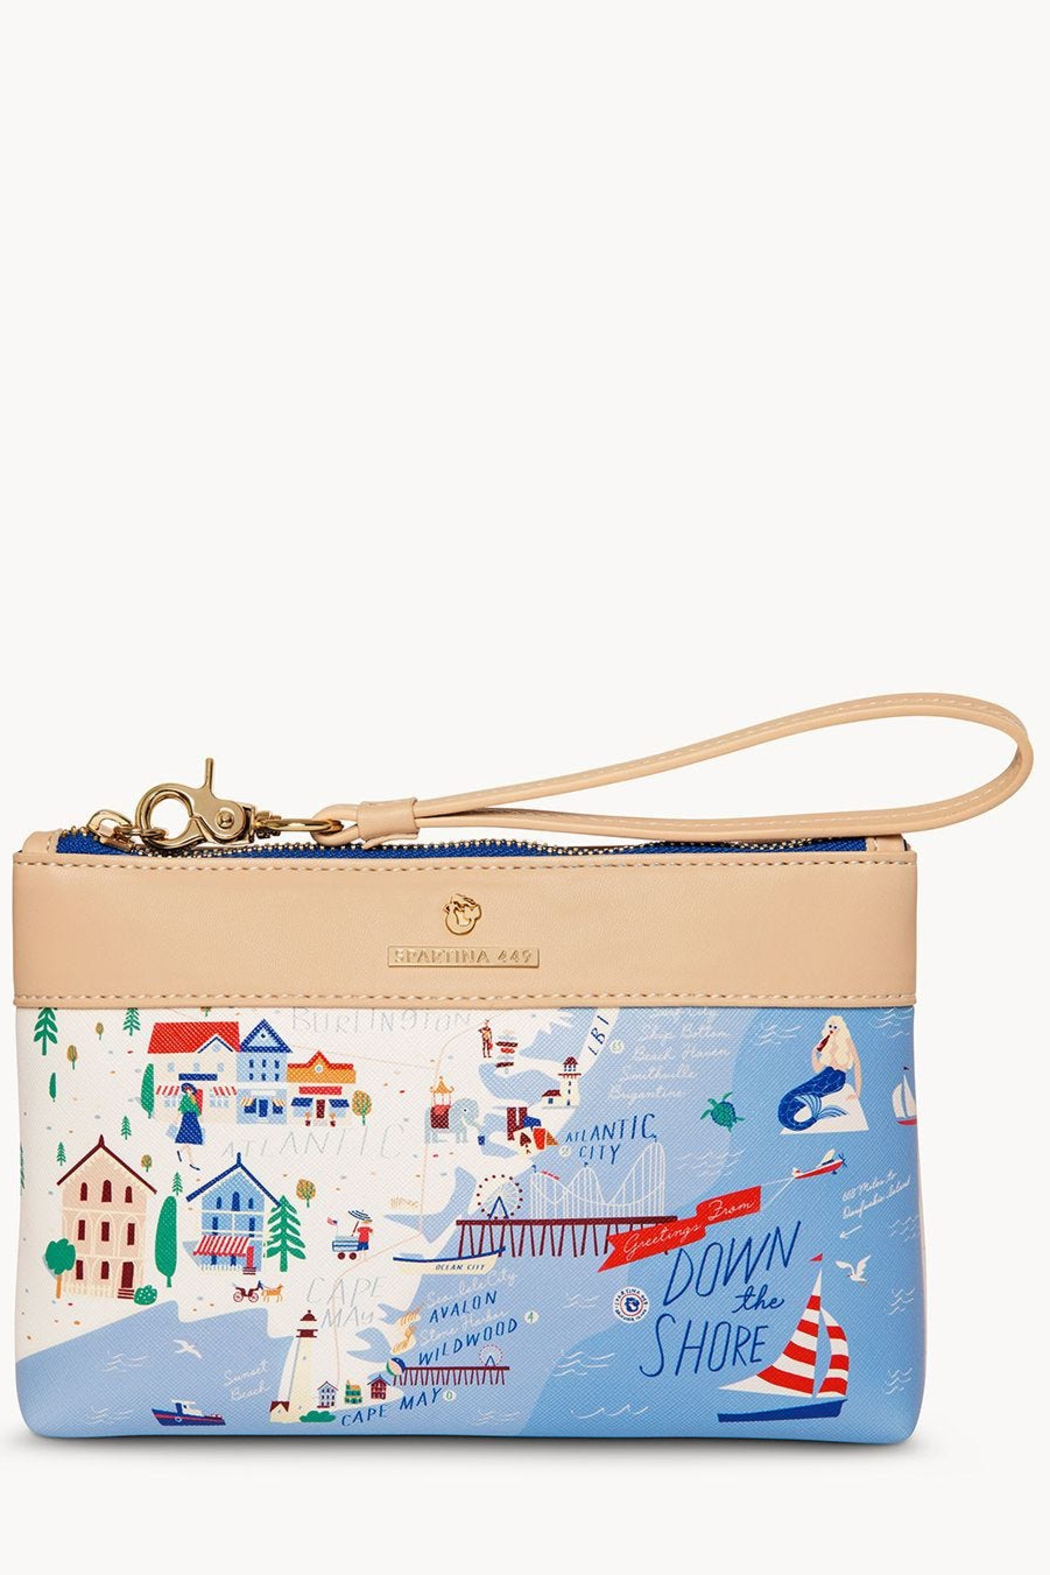 Spartina Down The Shore Scout Wristlet - Main Image